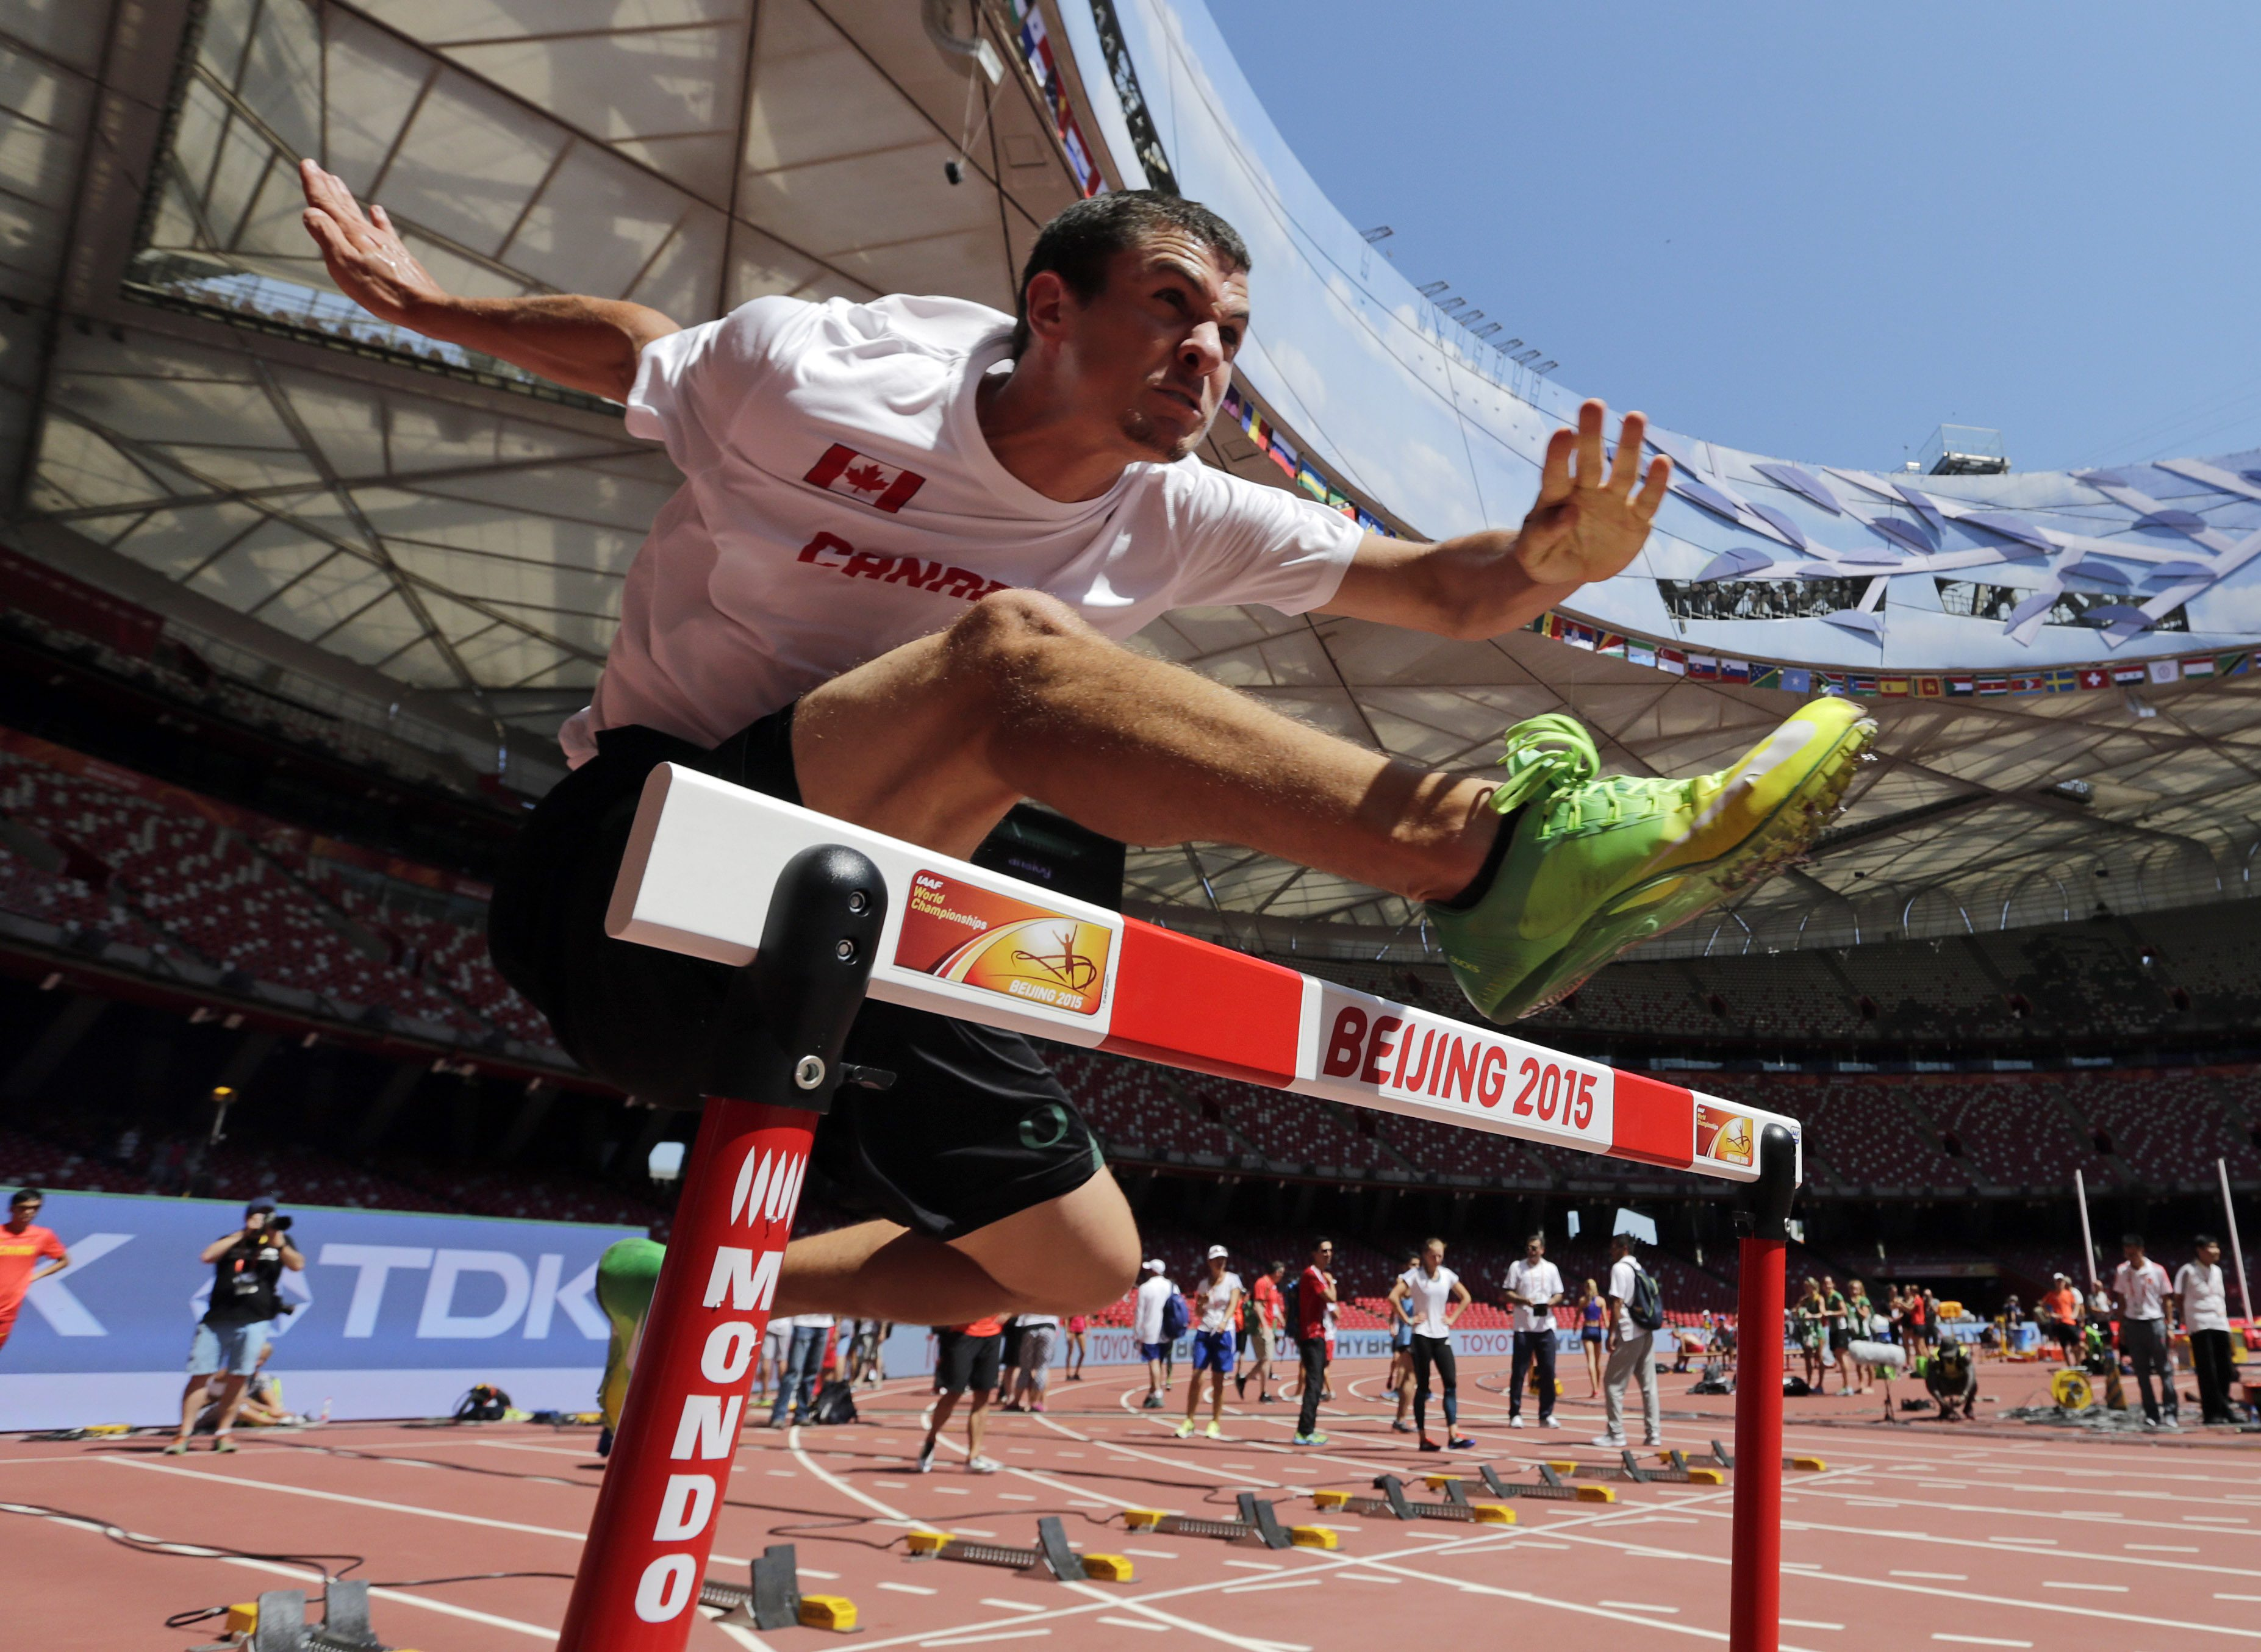 Canada's Johnathan Cabral clears a hurdle during a training session before the World Athletic Championships at the Bird's Nest stadium in Beijing, Friday, Aug. 21, 2015. (AP Photo/Andy Wong)